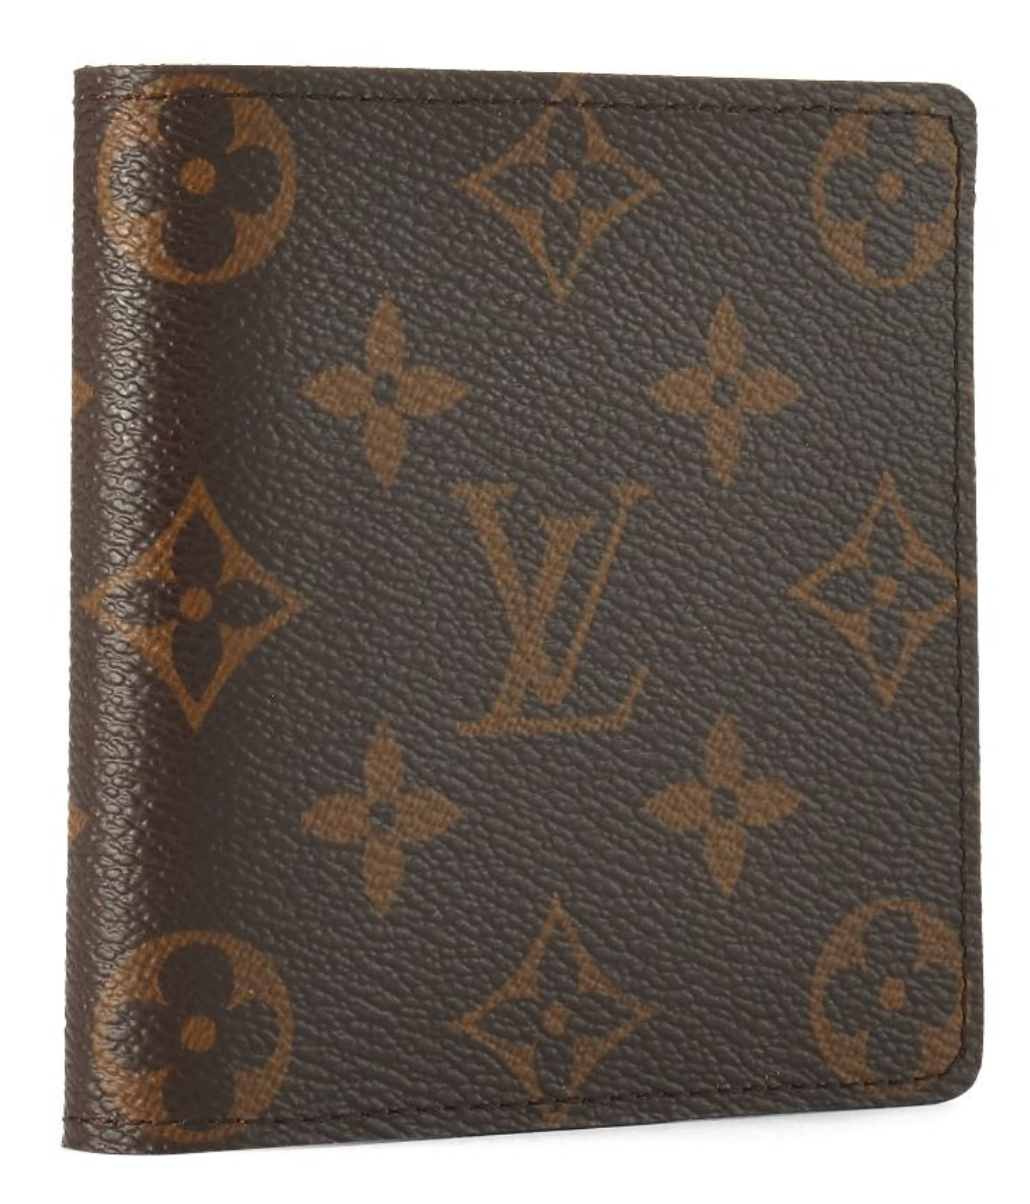 Louis Vuitton wallet a good luxury Christmas gift.